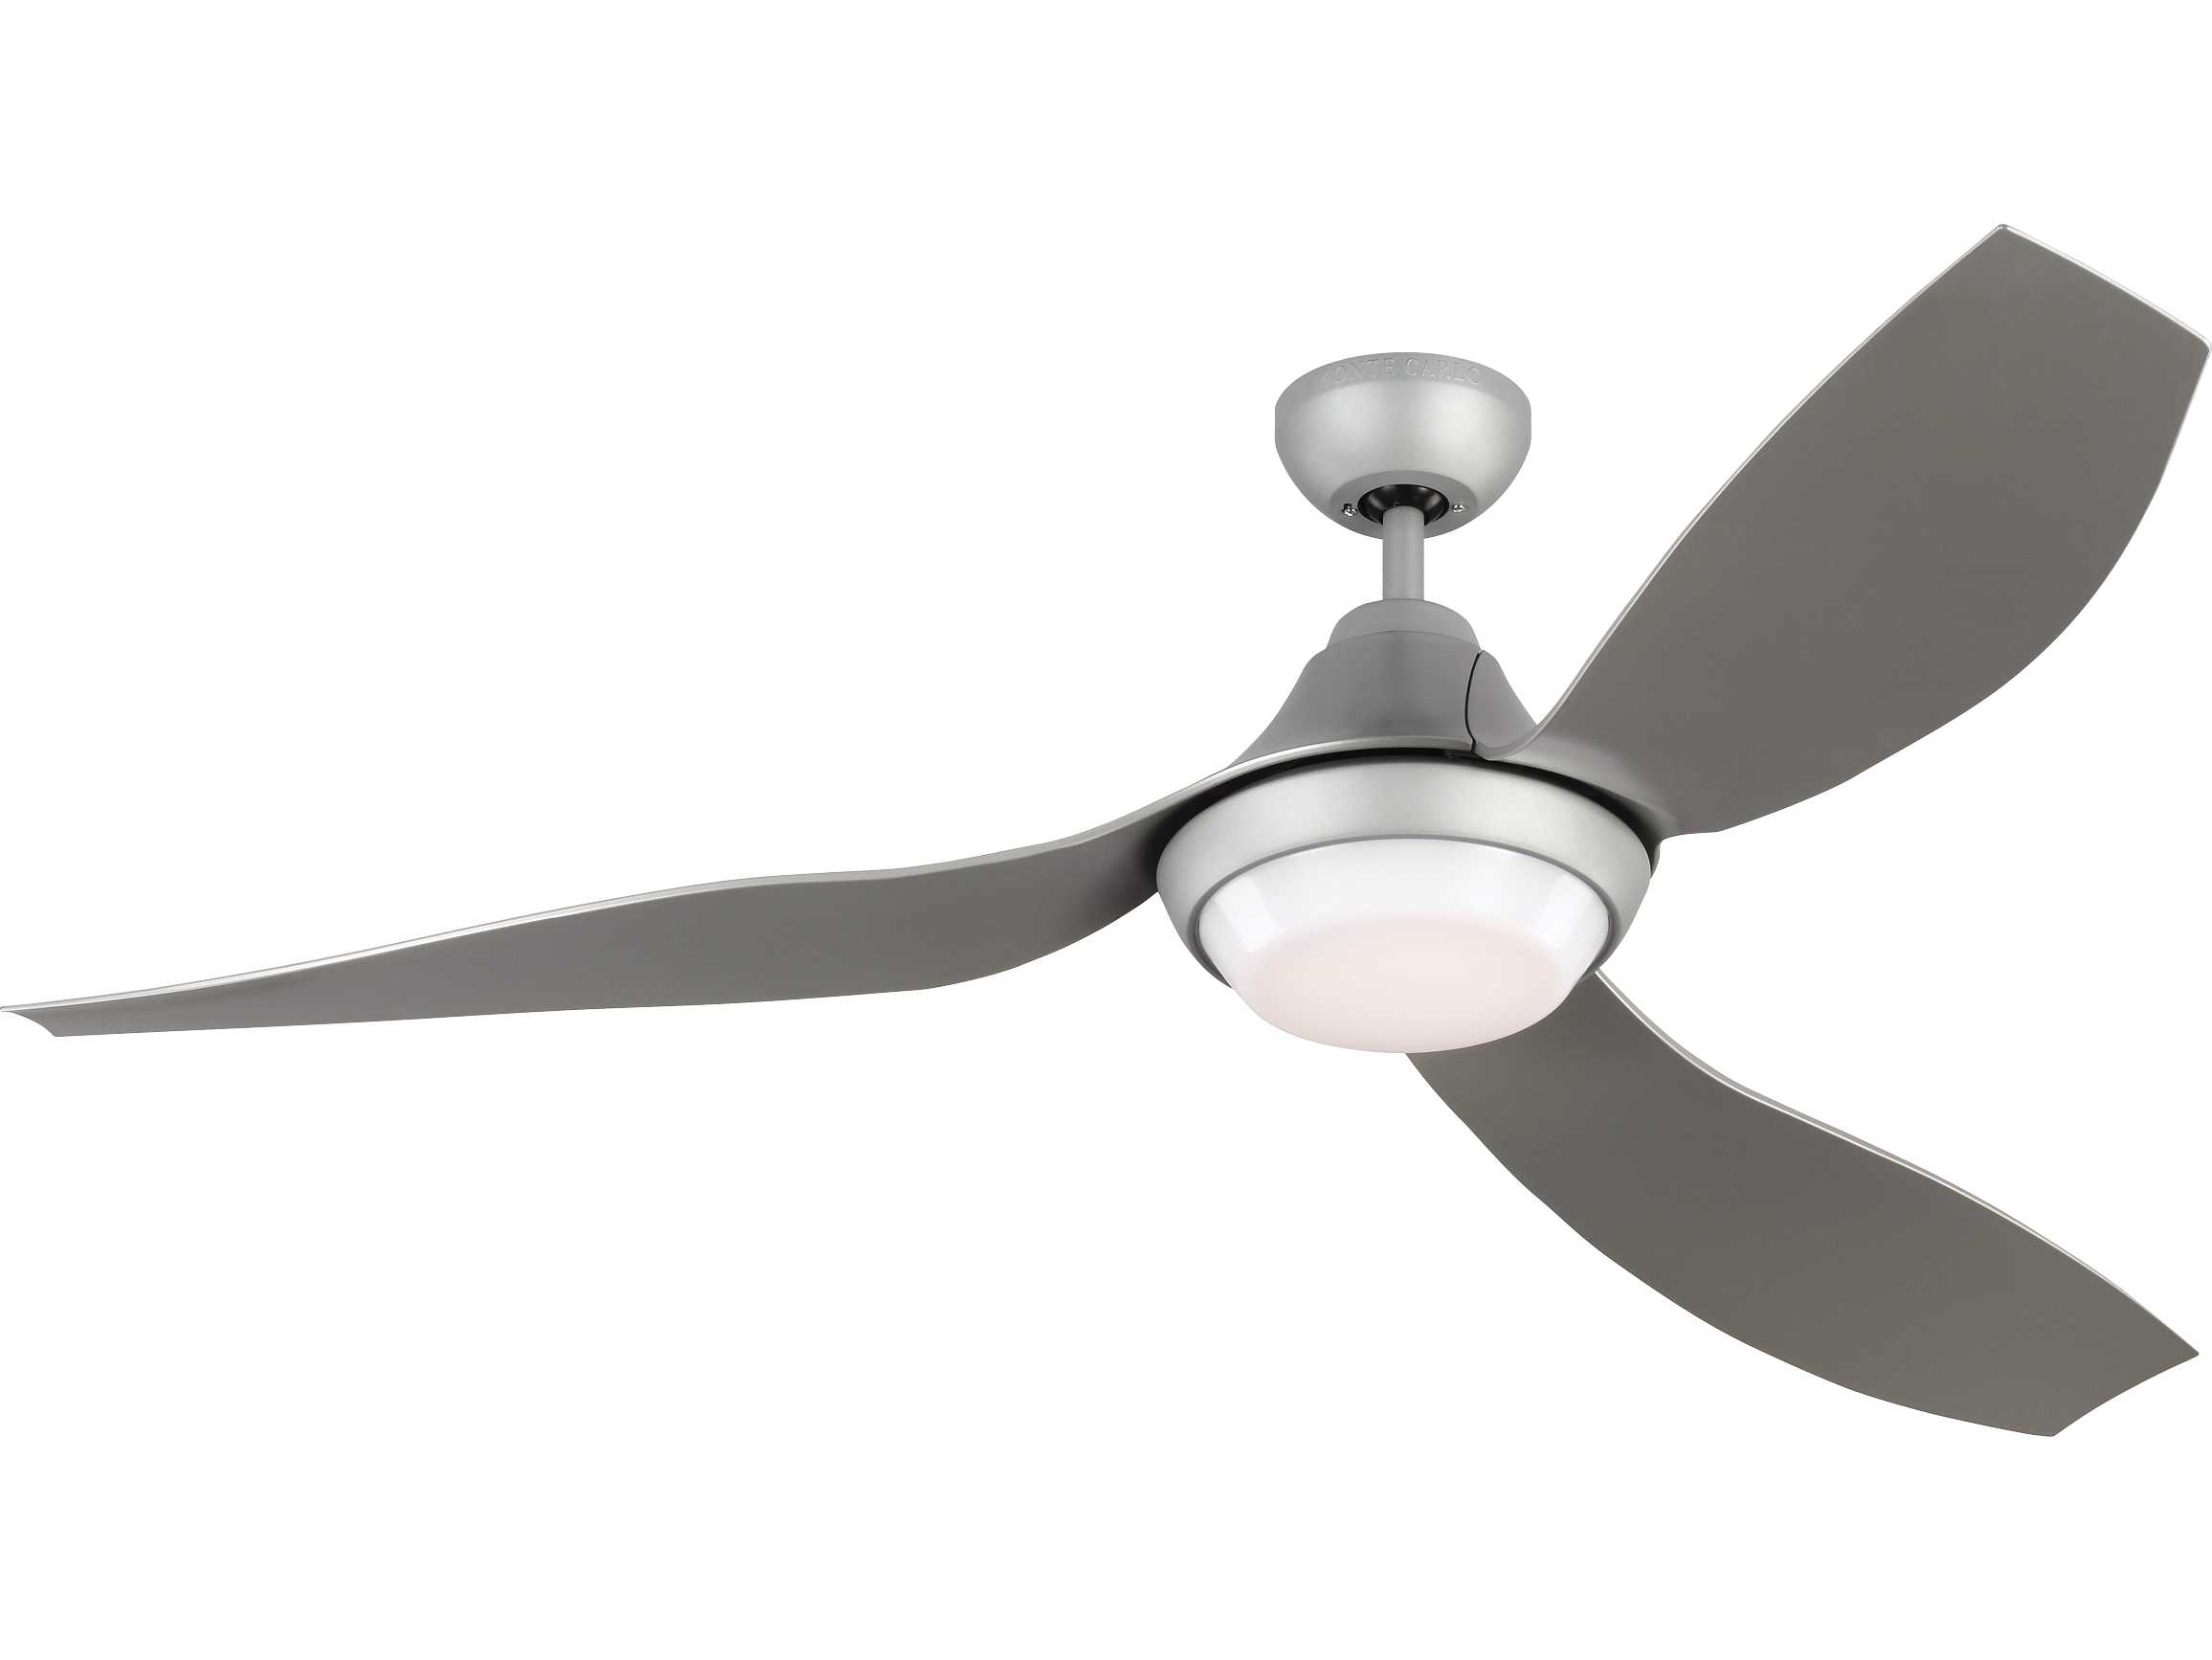 Monte Carlo Fans Avvo Grey 56 Wide Led Indoor Outdoor Ceiling Fan Mcf3avor56gryd